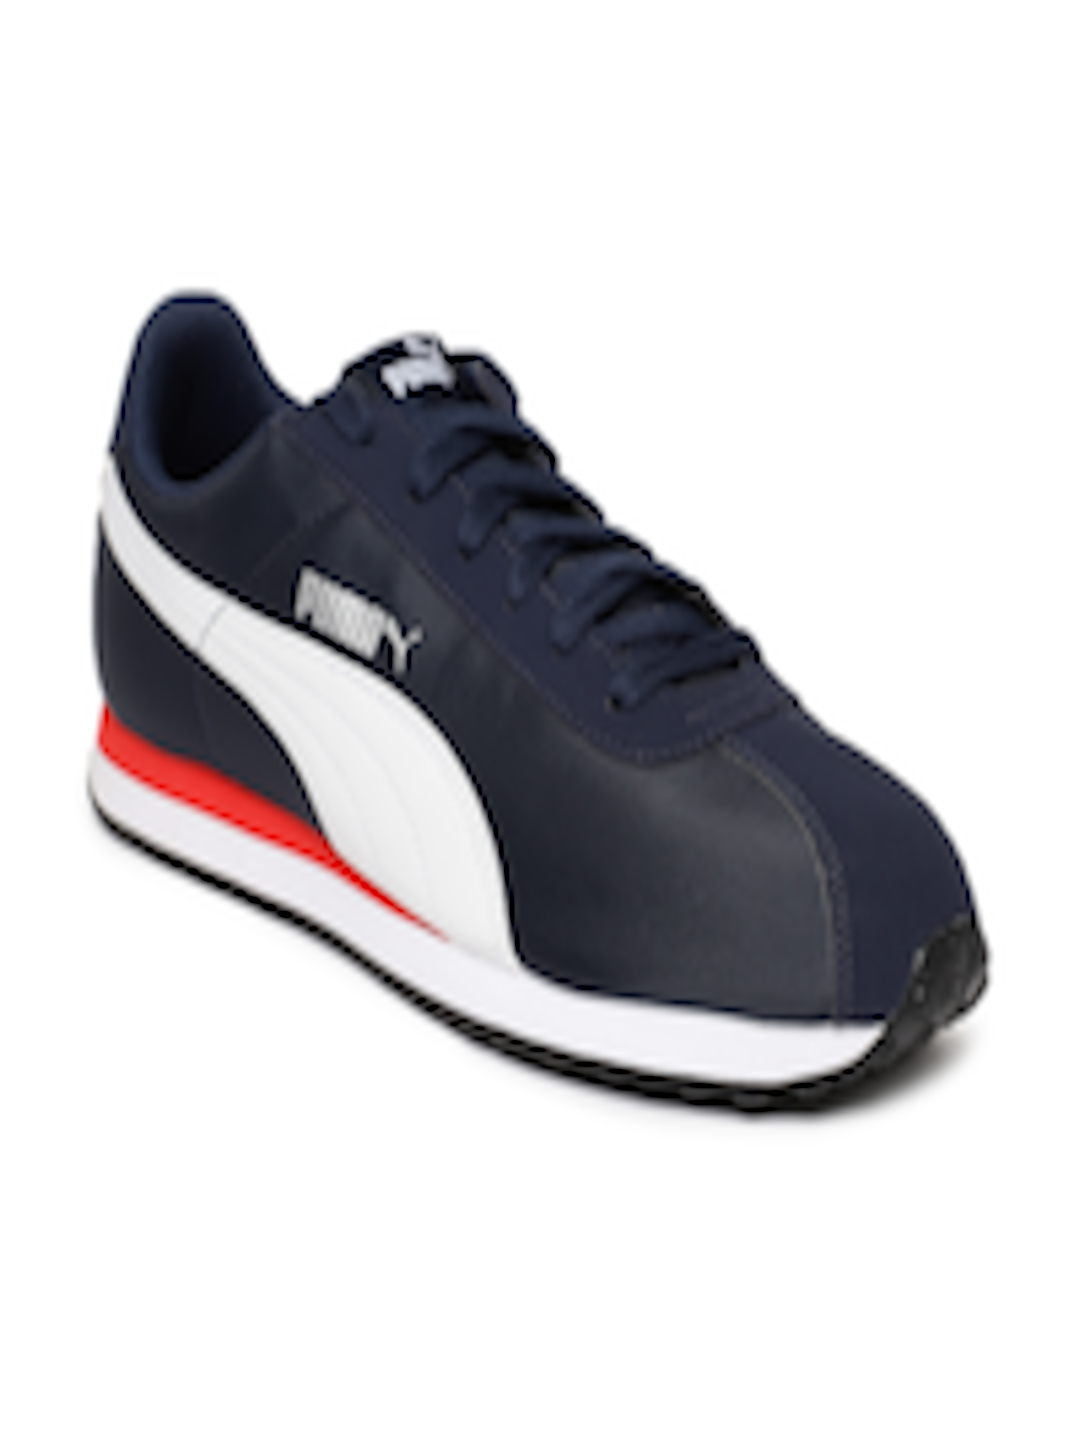 Buy Puma Men Navy Turin NL Sneakers - Casual Shoes for Men 4426015 ... f69d4e1d0